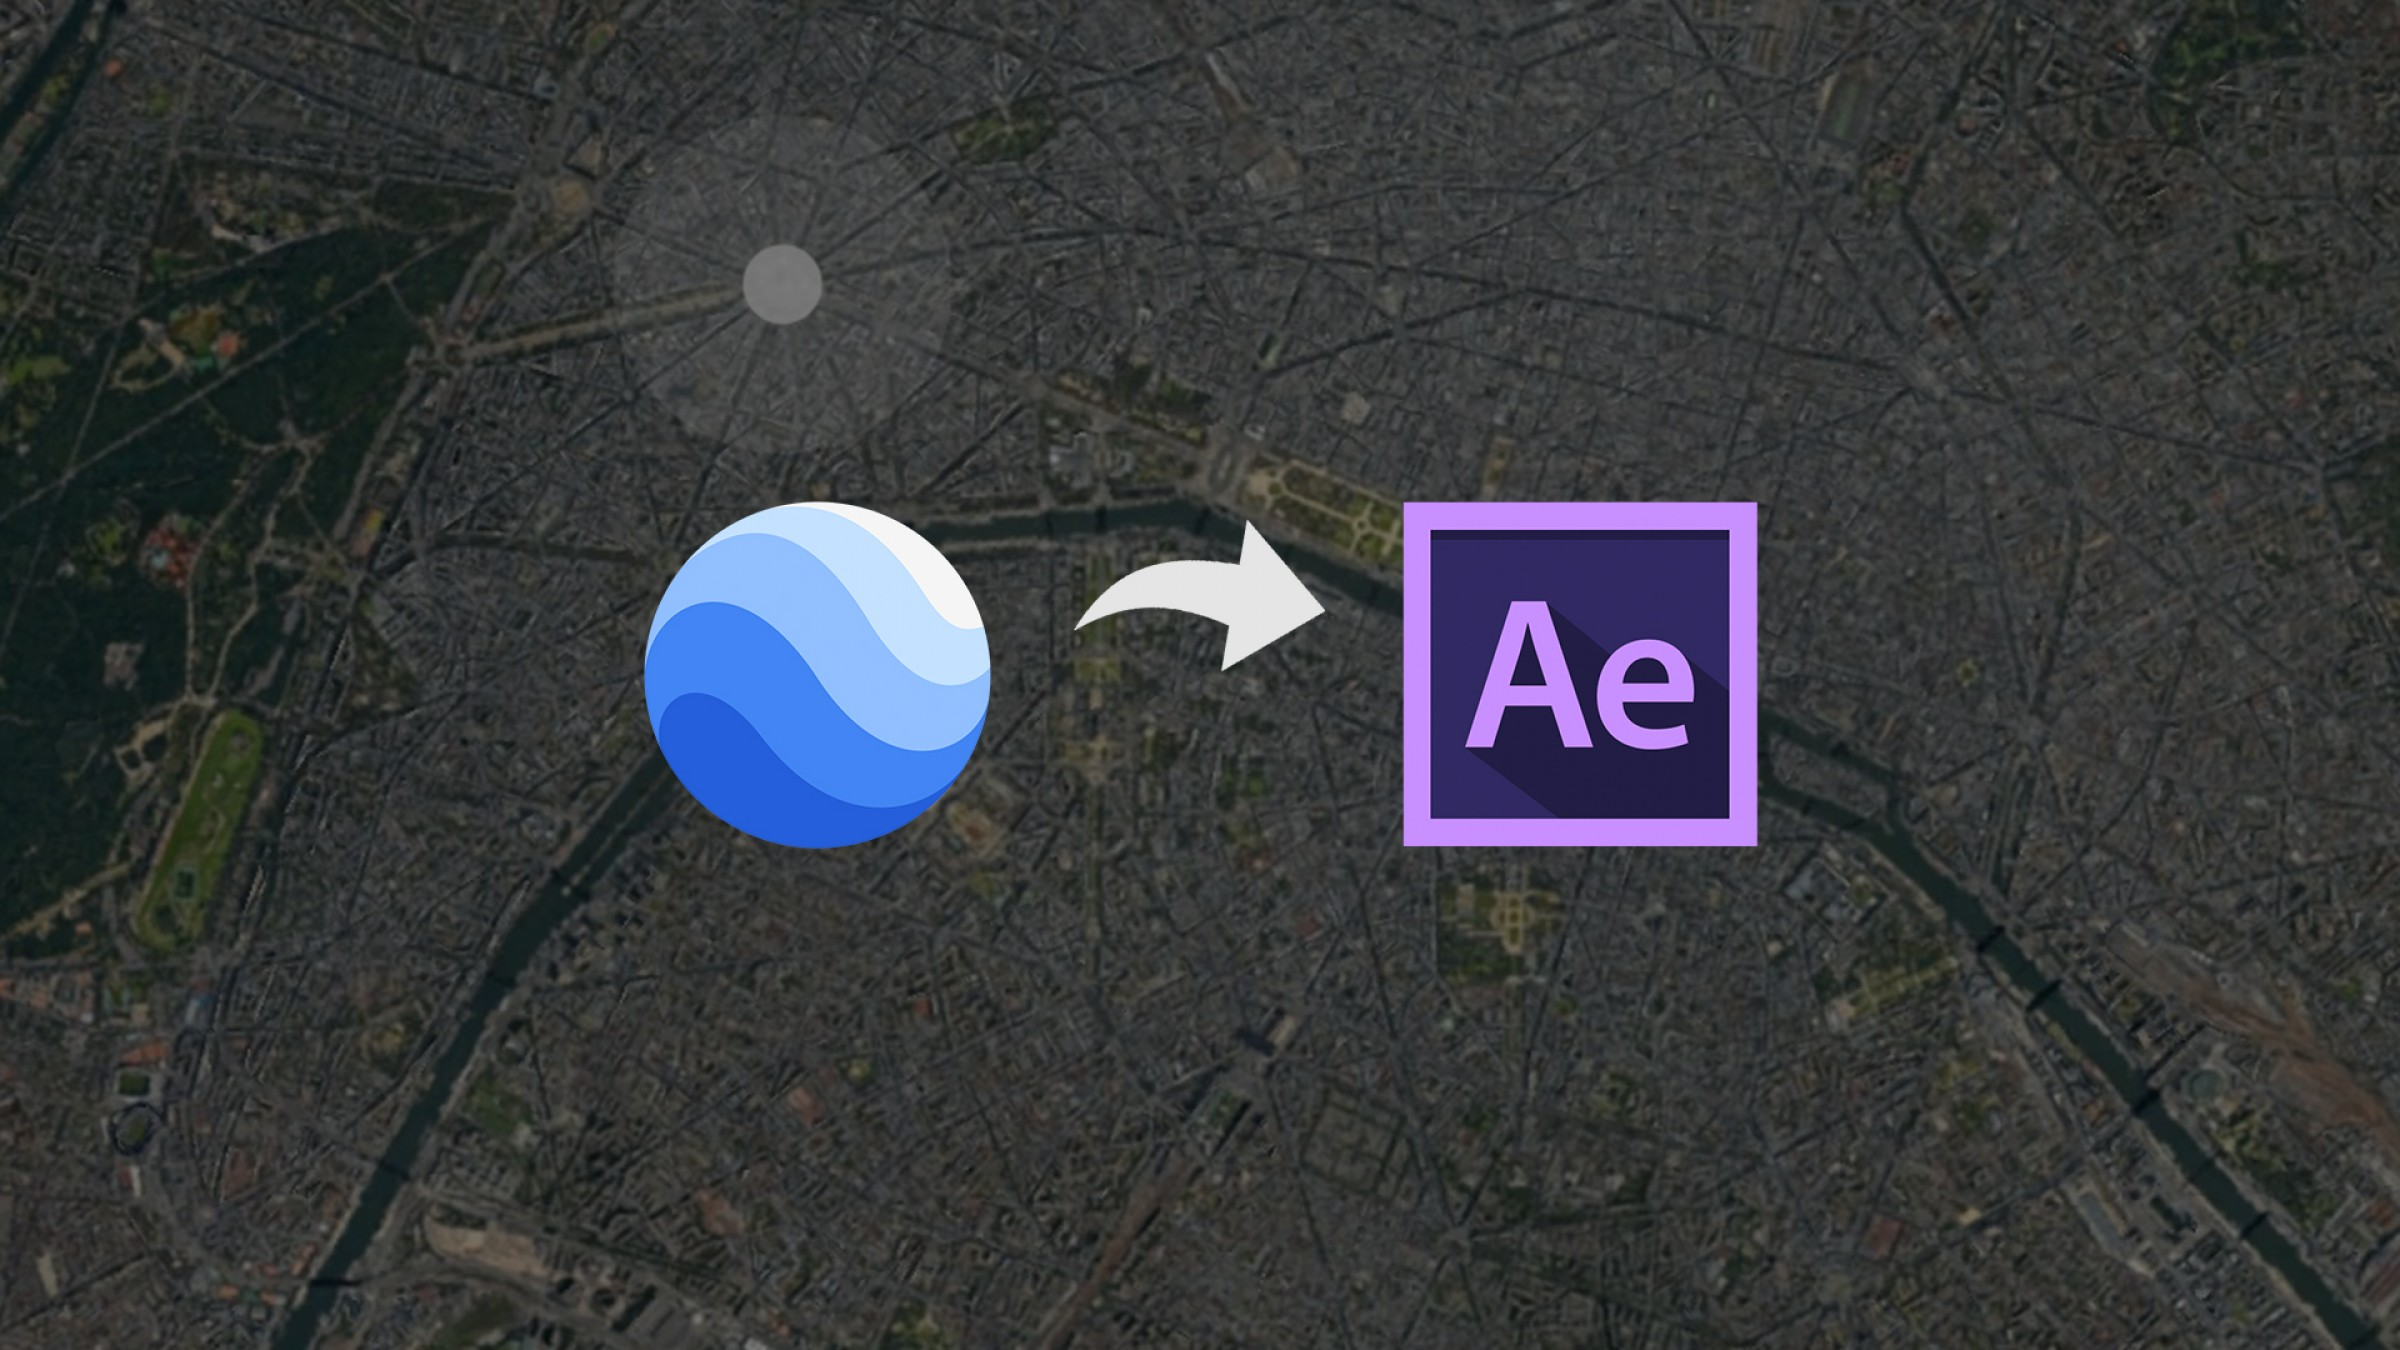 How to Use Google Earth with Adobe After Effects